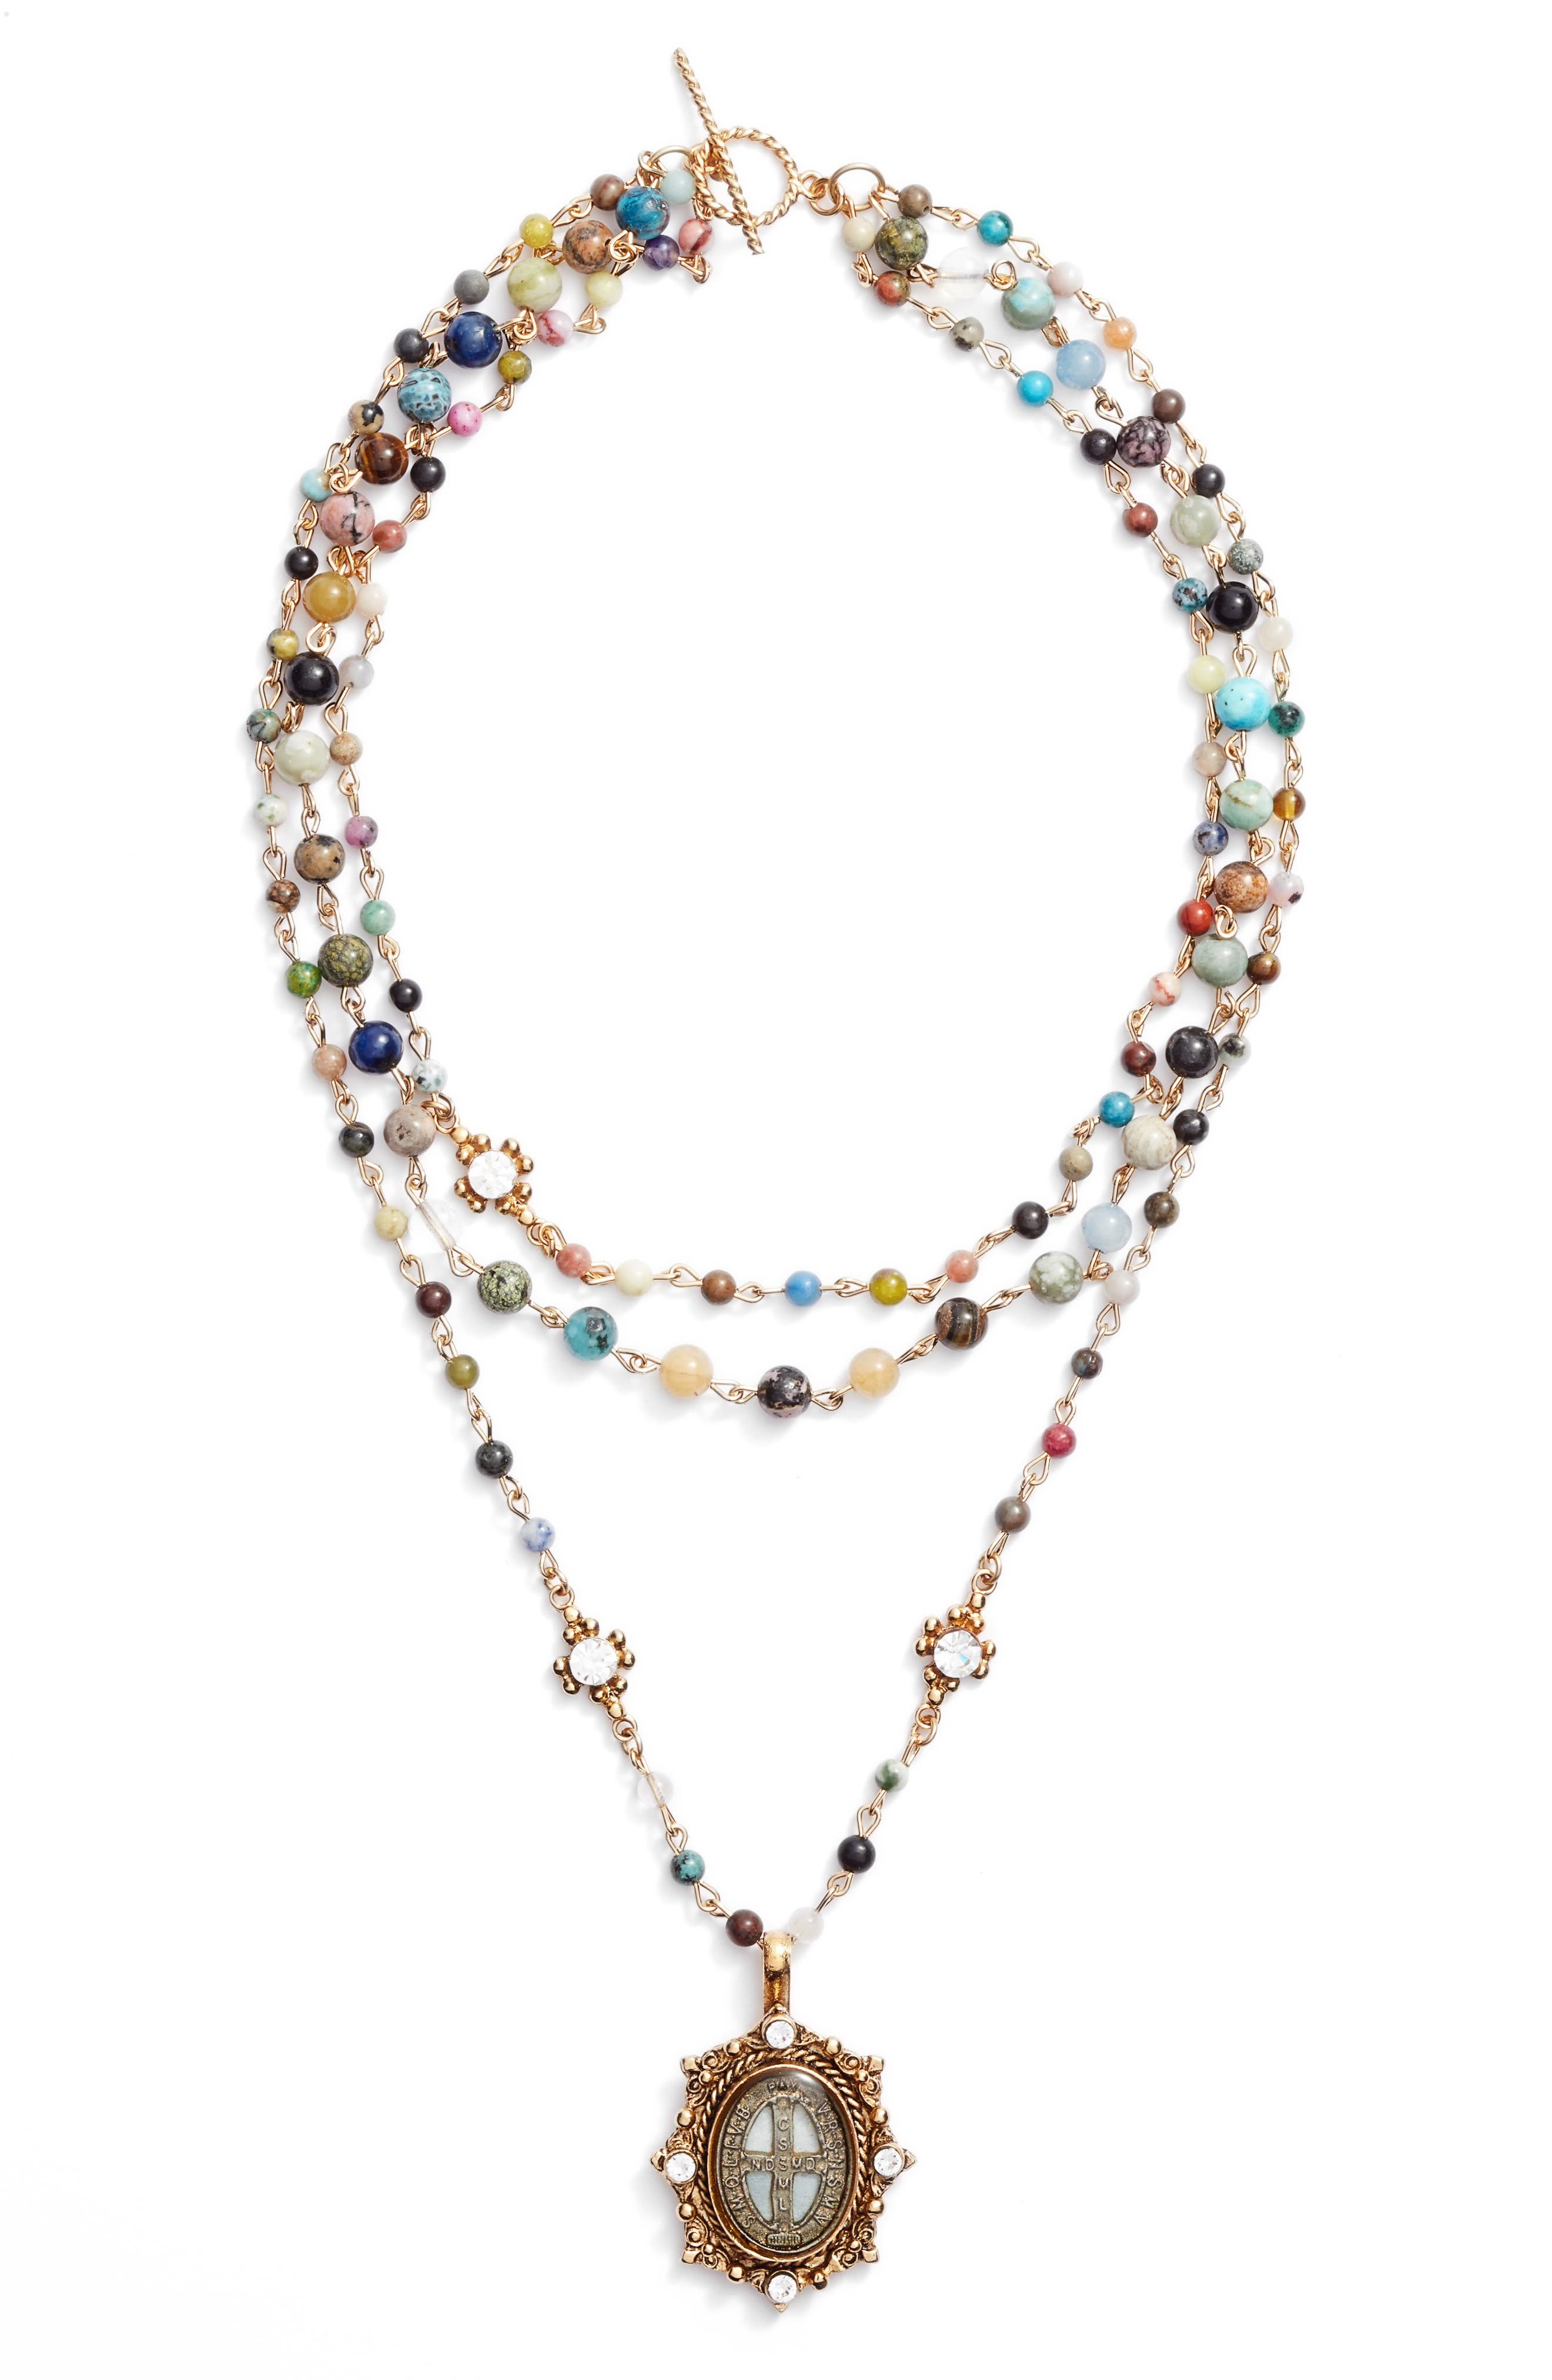 Virgins Saints & Angels Magdalena Multistrand Necklace (Nordstrom Exclusive)